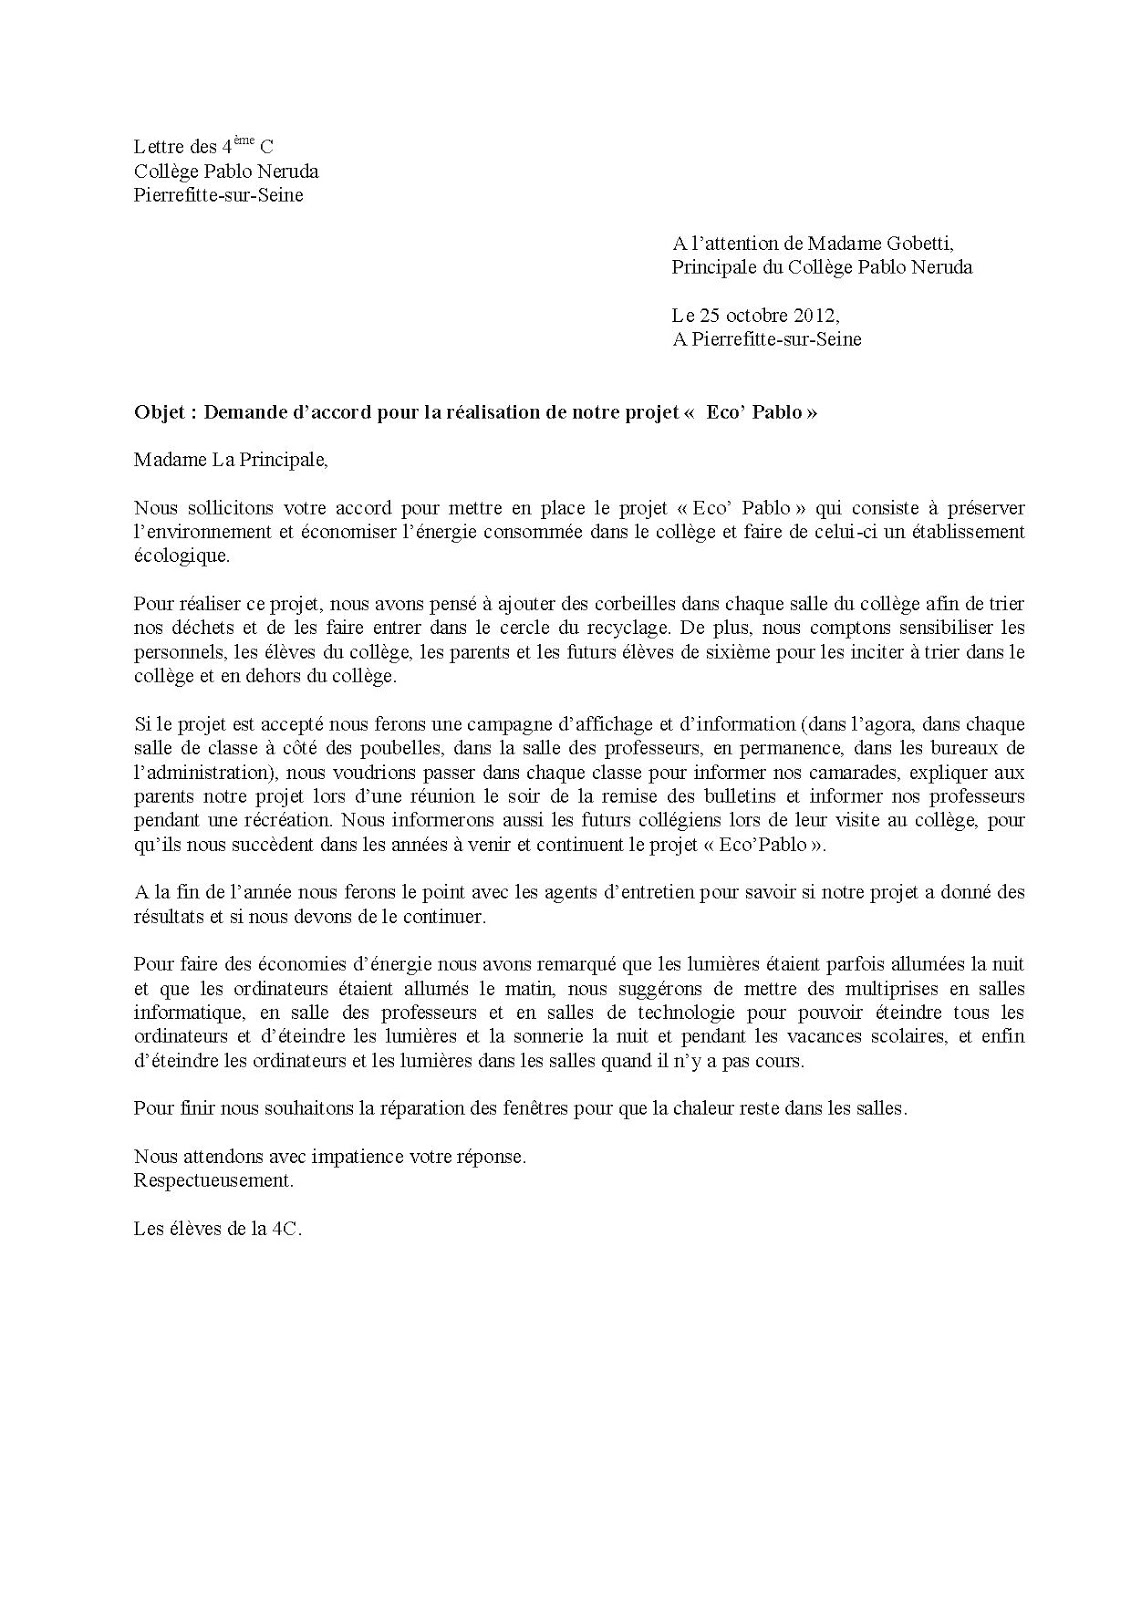 Sample Cover Letter: Exemple De Lettre Officielle En Allemand